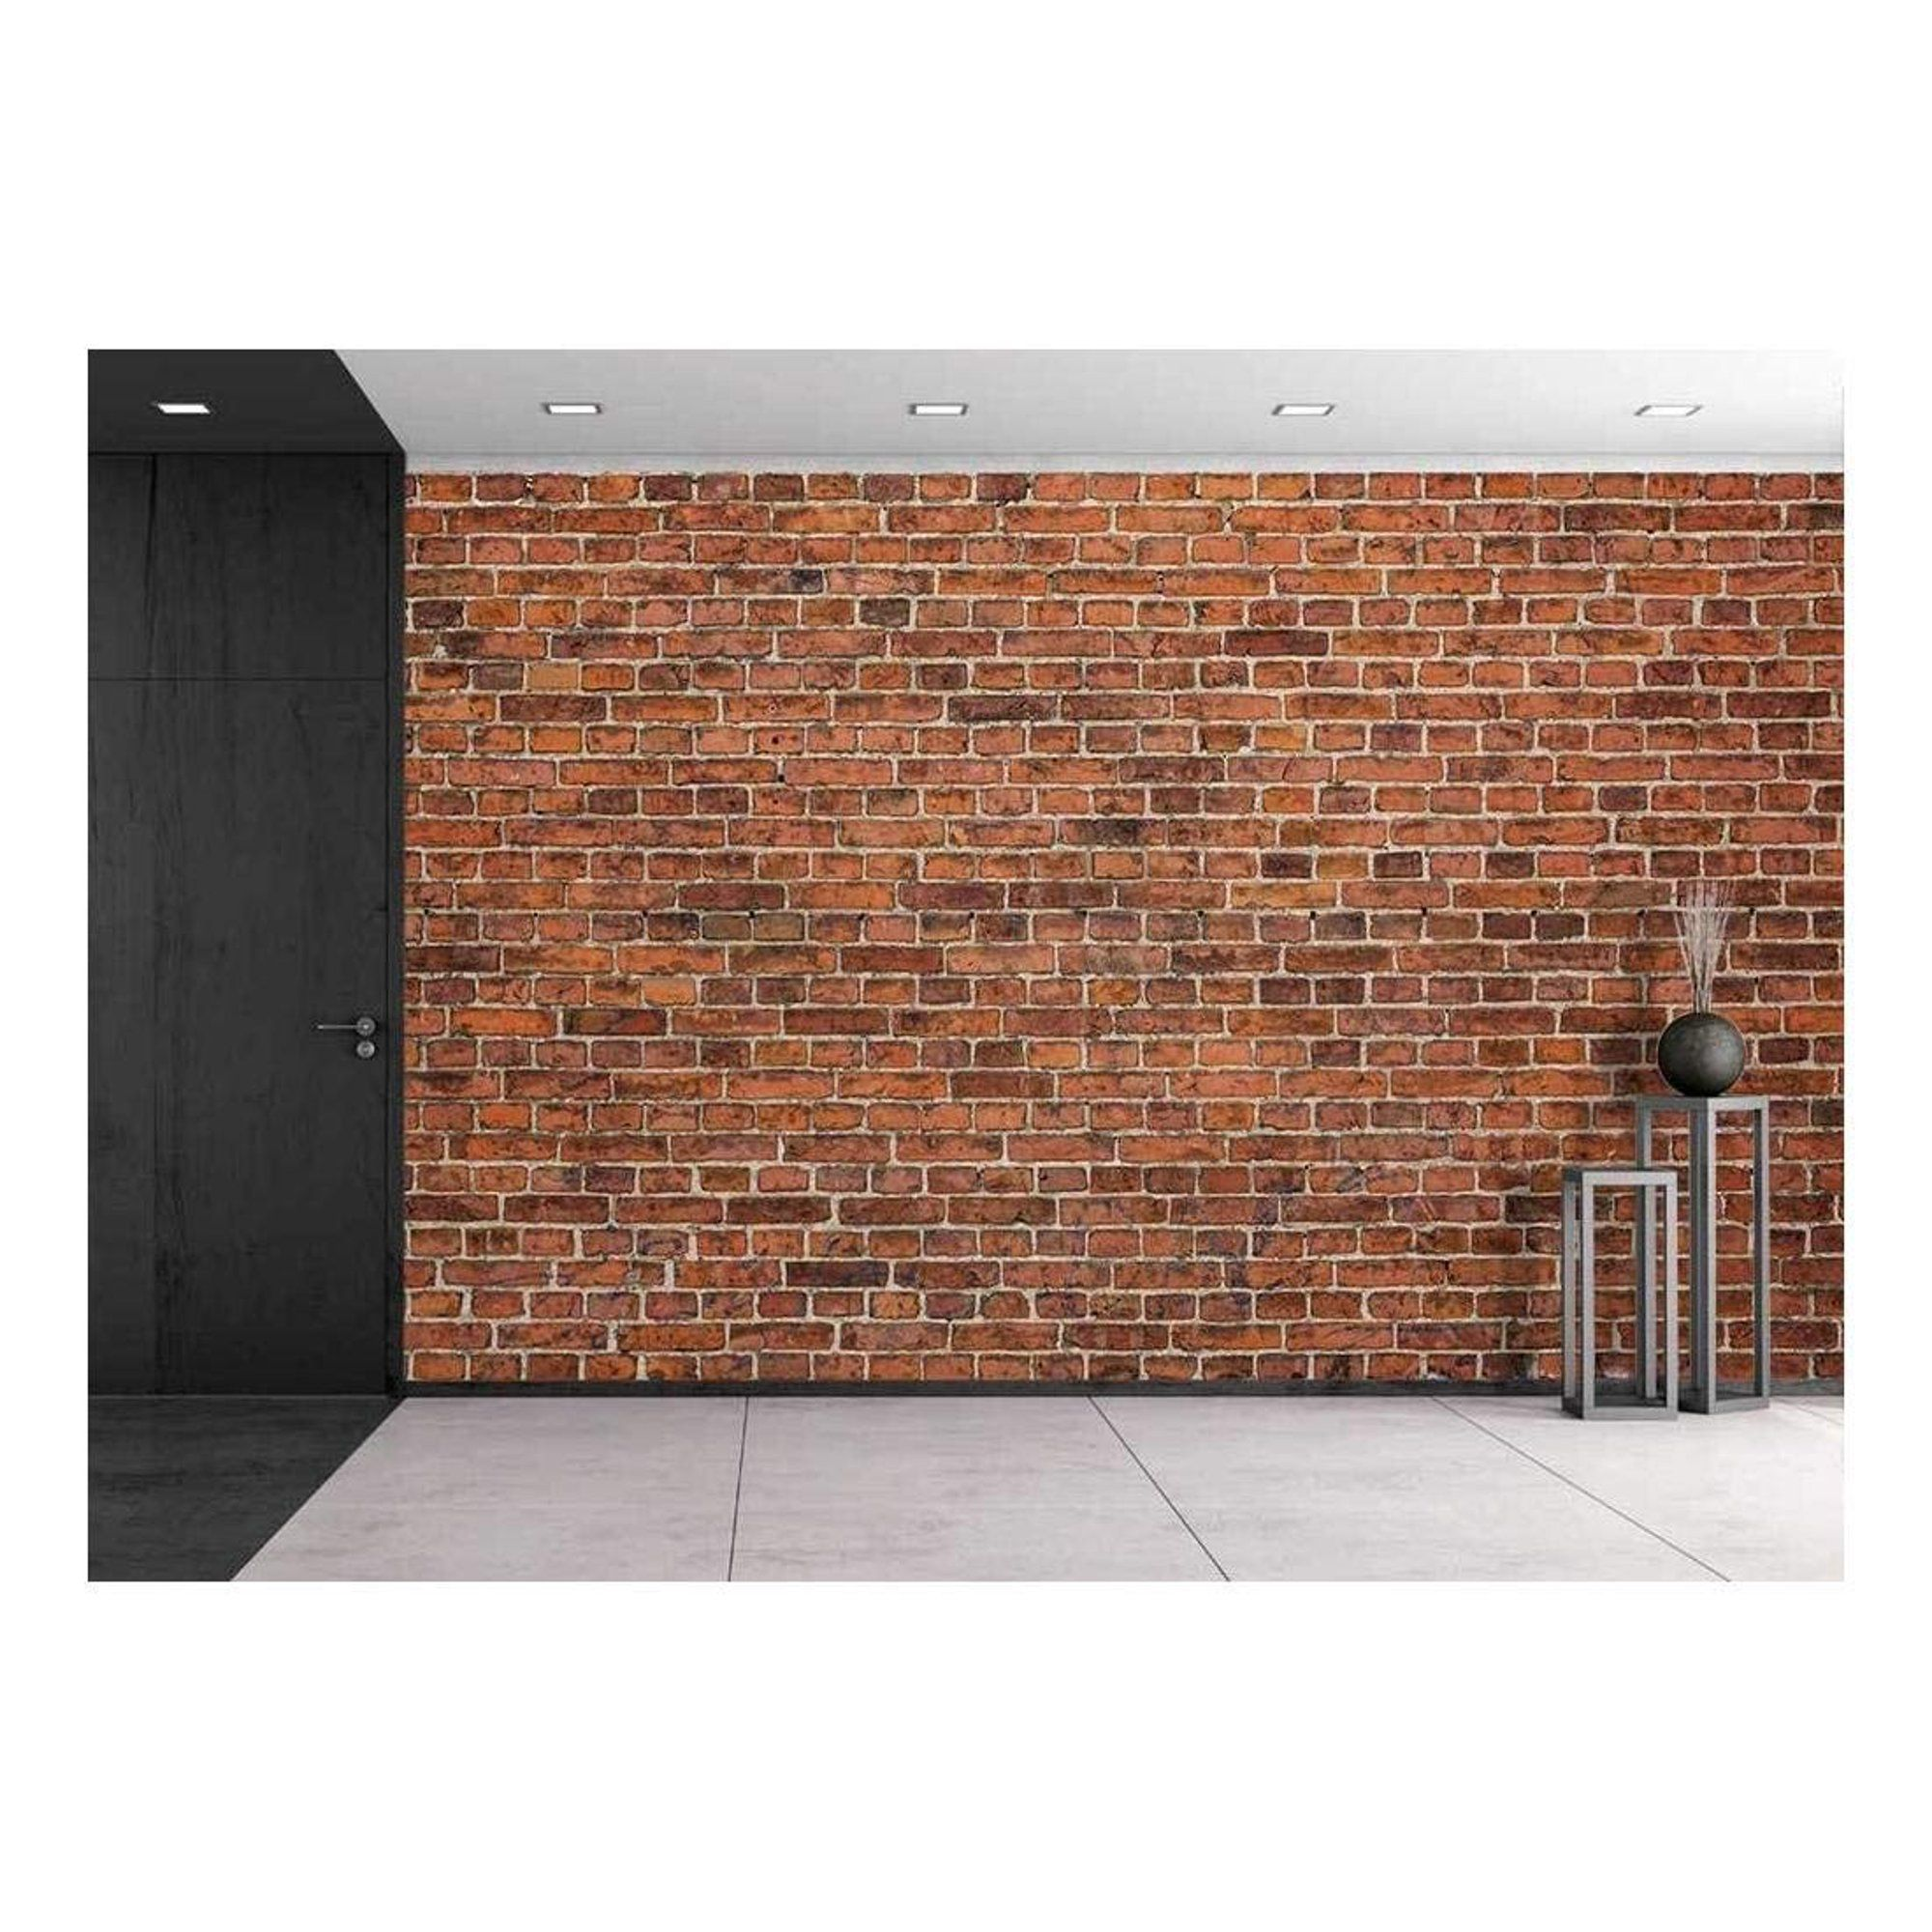 Wall26 Grunge Red Brick Wall Background With Copy Space Removable Wall Mural Self Adhesive Large Wallpaper 100x144 Inches Walmart Com In 2021 Removable Wall Murals Red Brick Walls Brick Wall Background